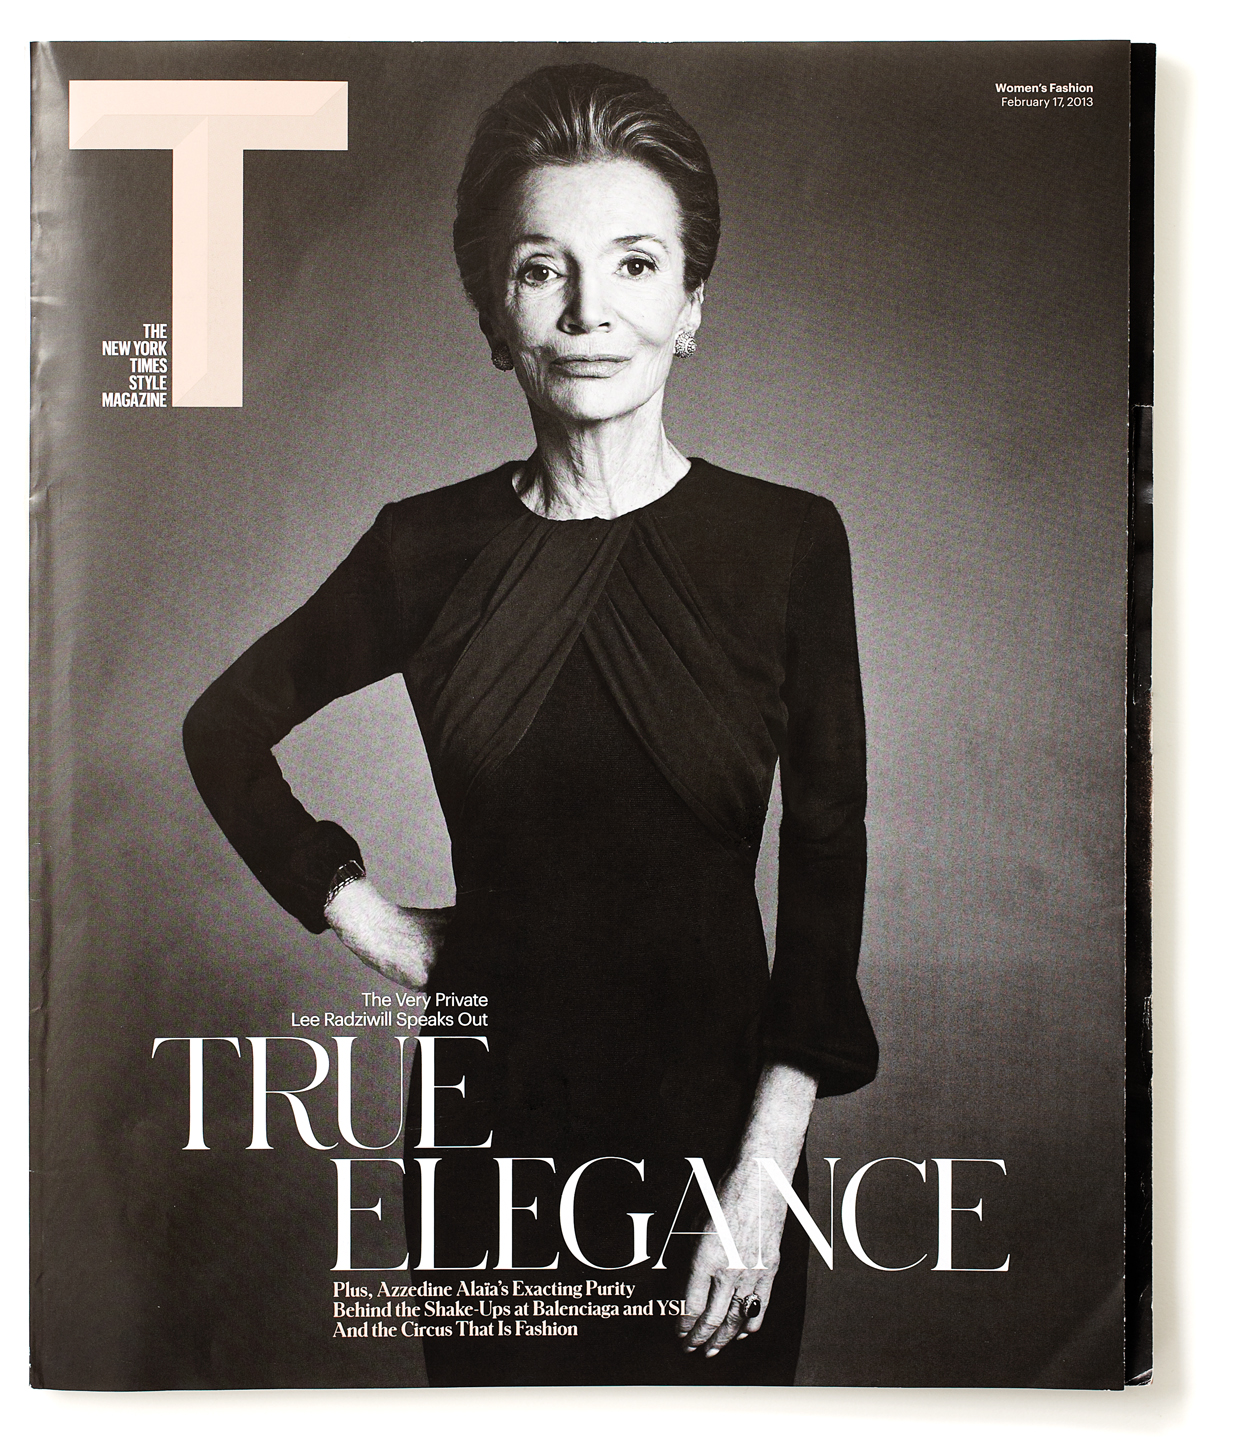 Lee Radziwell, 79, on the cover of February's New York Times T magazine